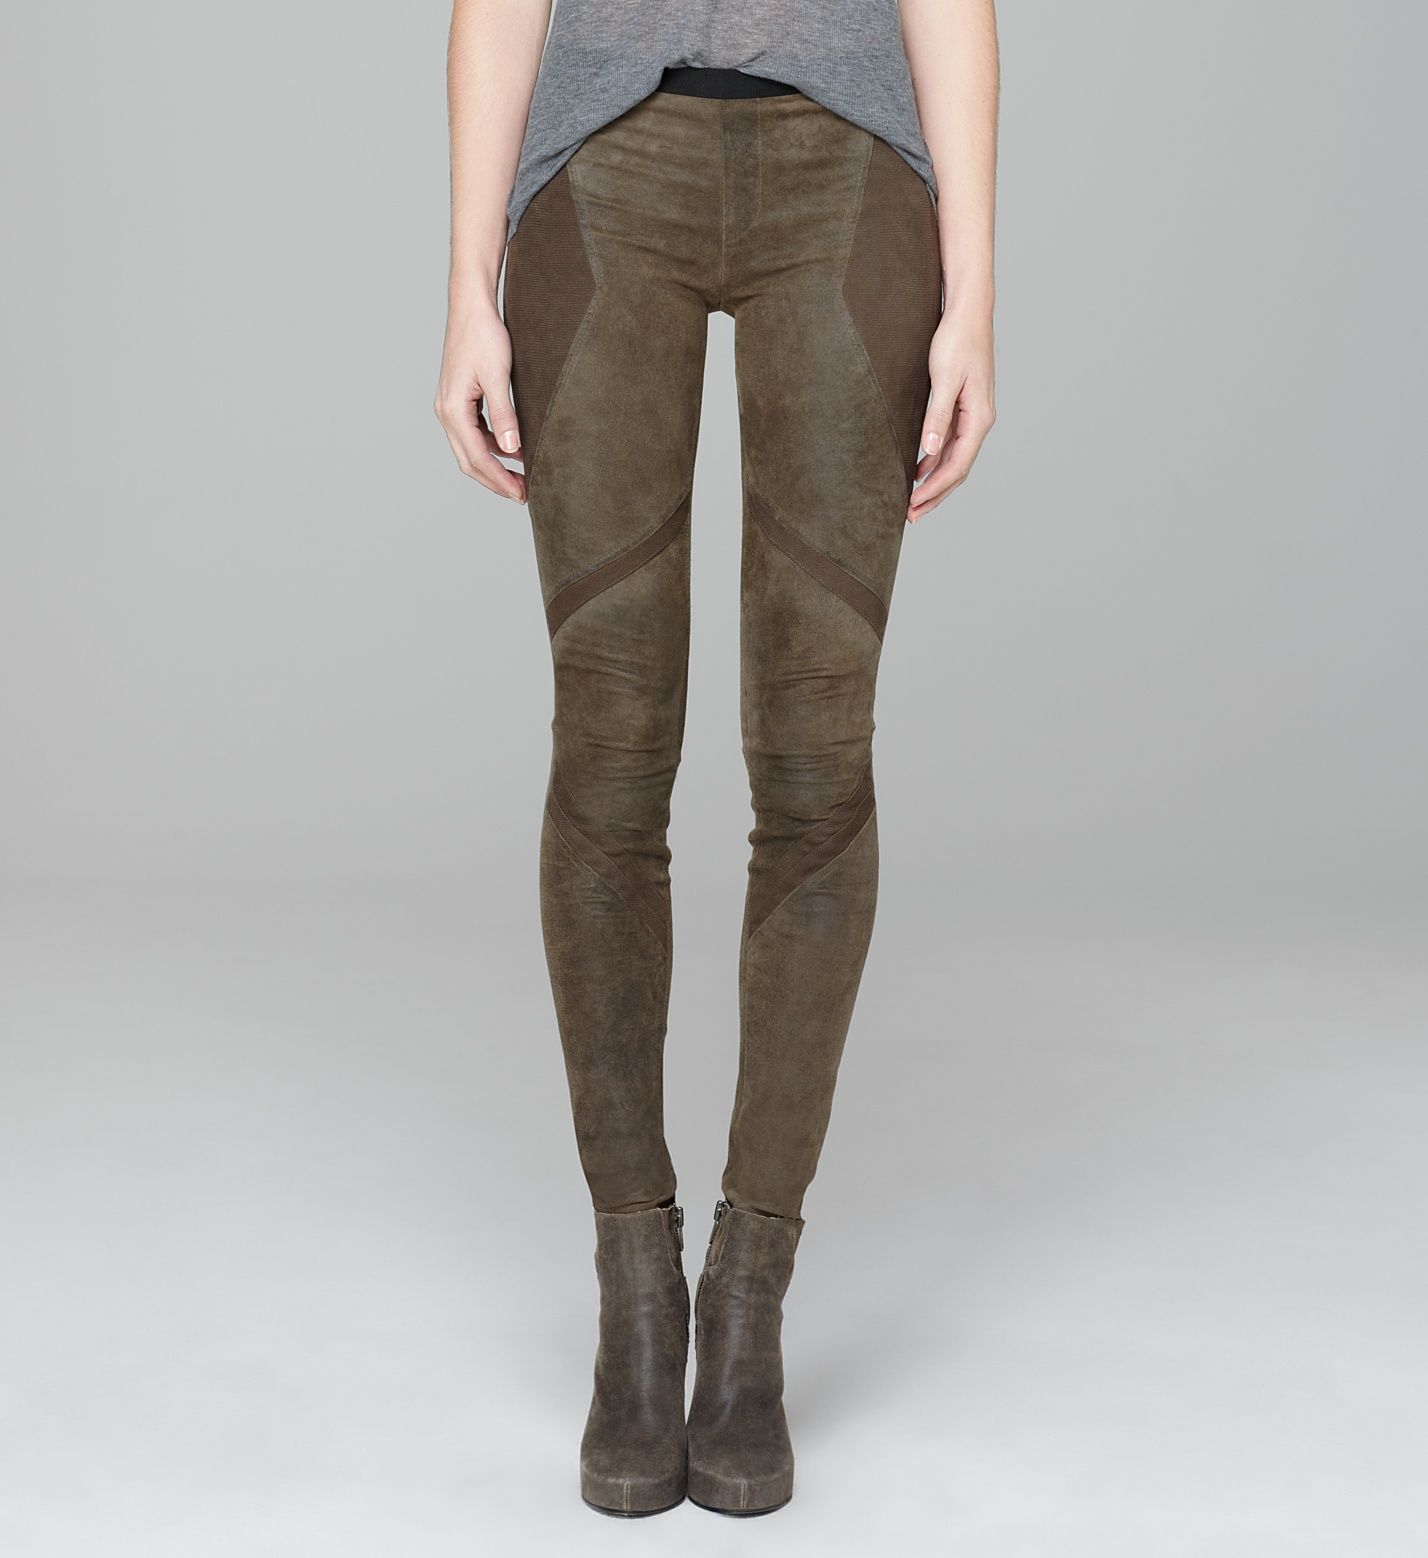 PATINA AMOUR LEATHER LEGGING